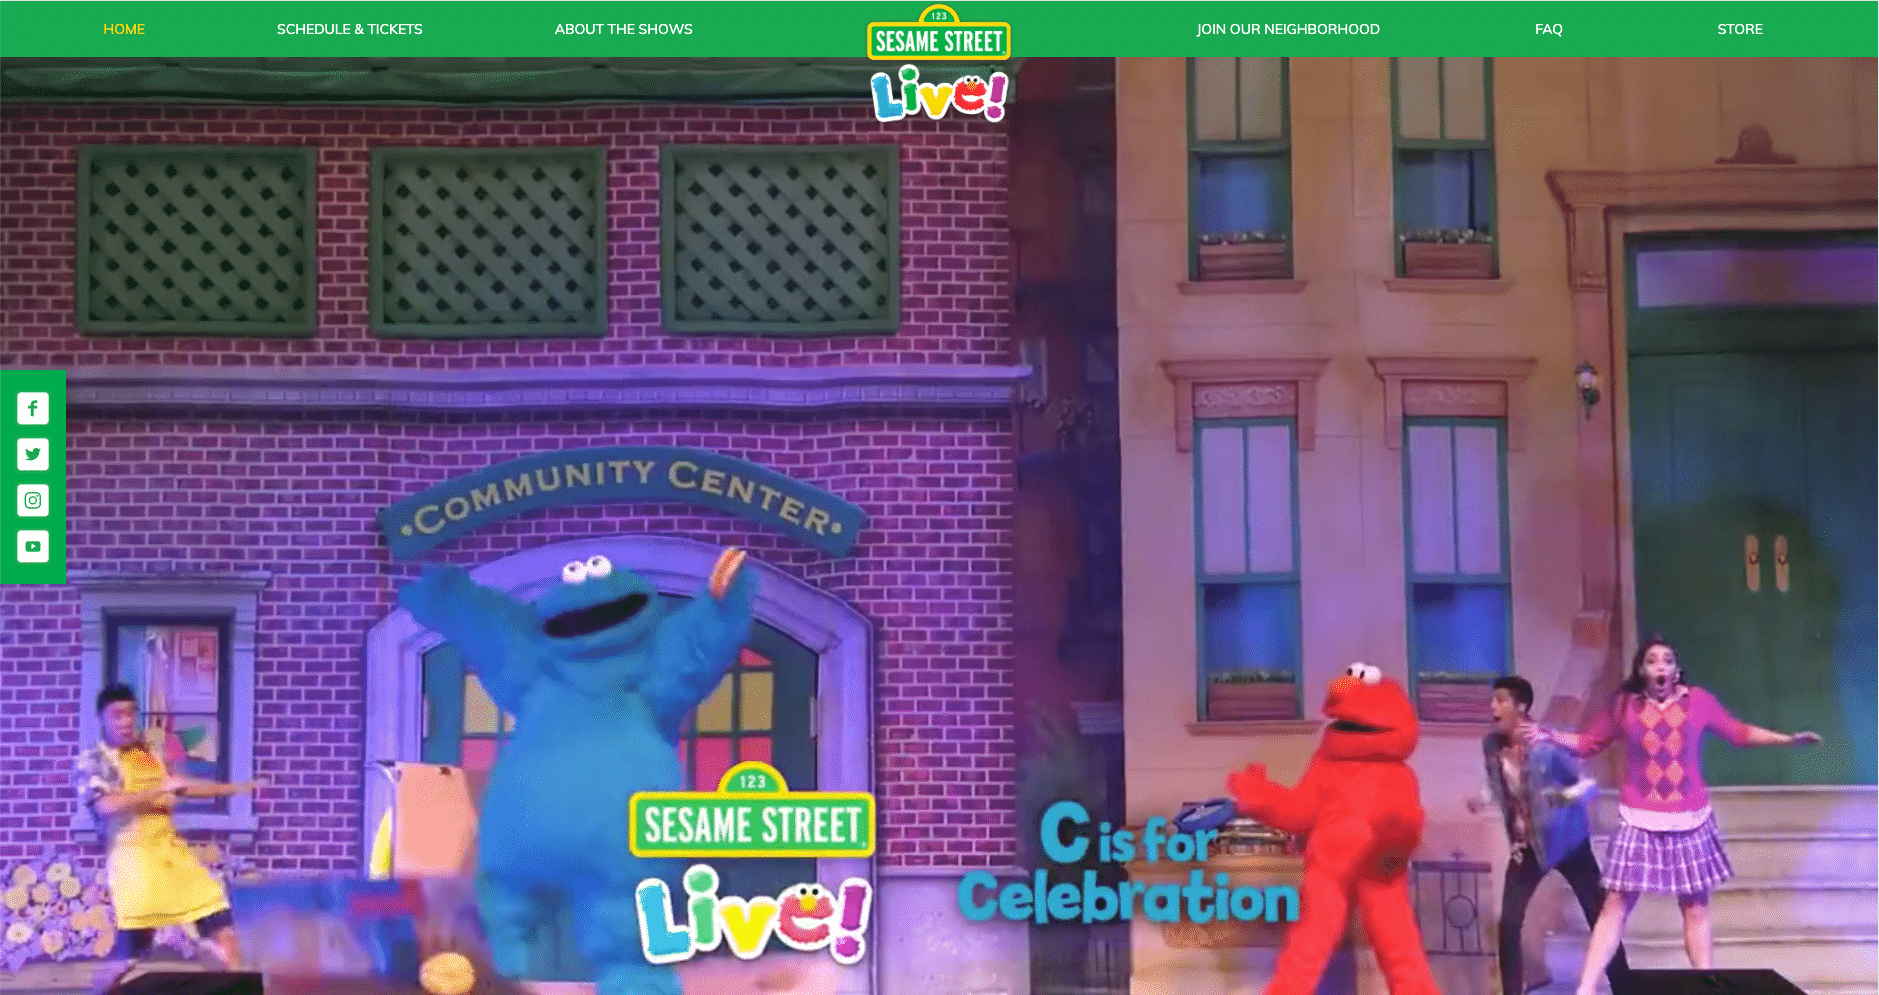 Sesame Street Live, the show's live performance ticket hub